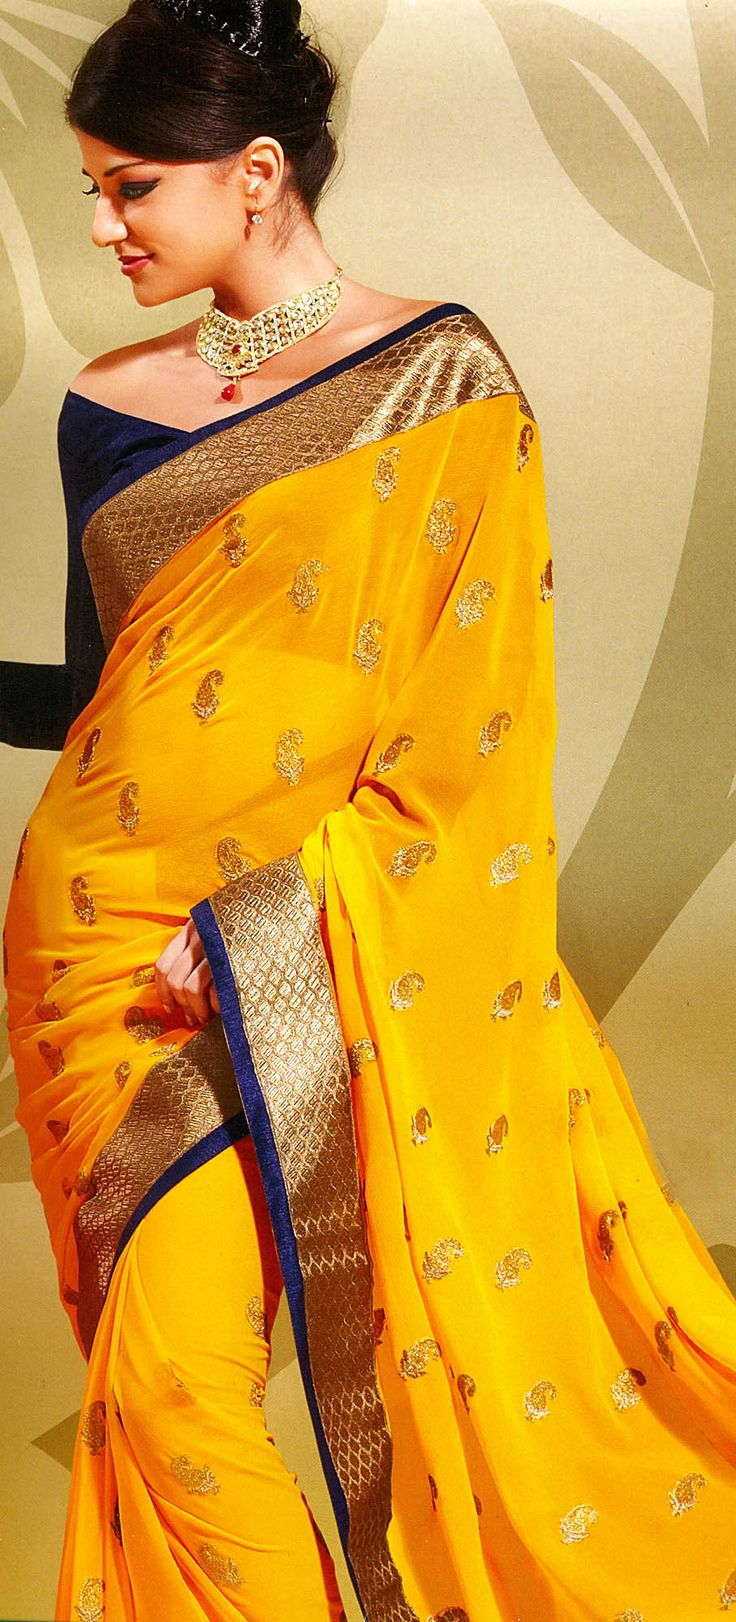 Spectra-Yellow Designer Sari with Metallic-Thread Embroidered Paisleys and Patch Border